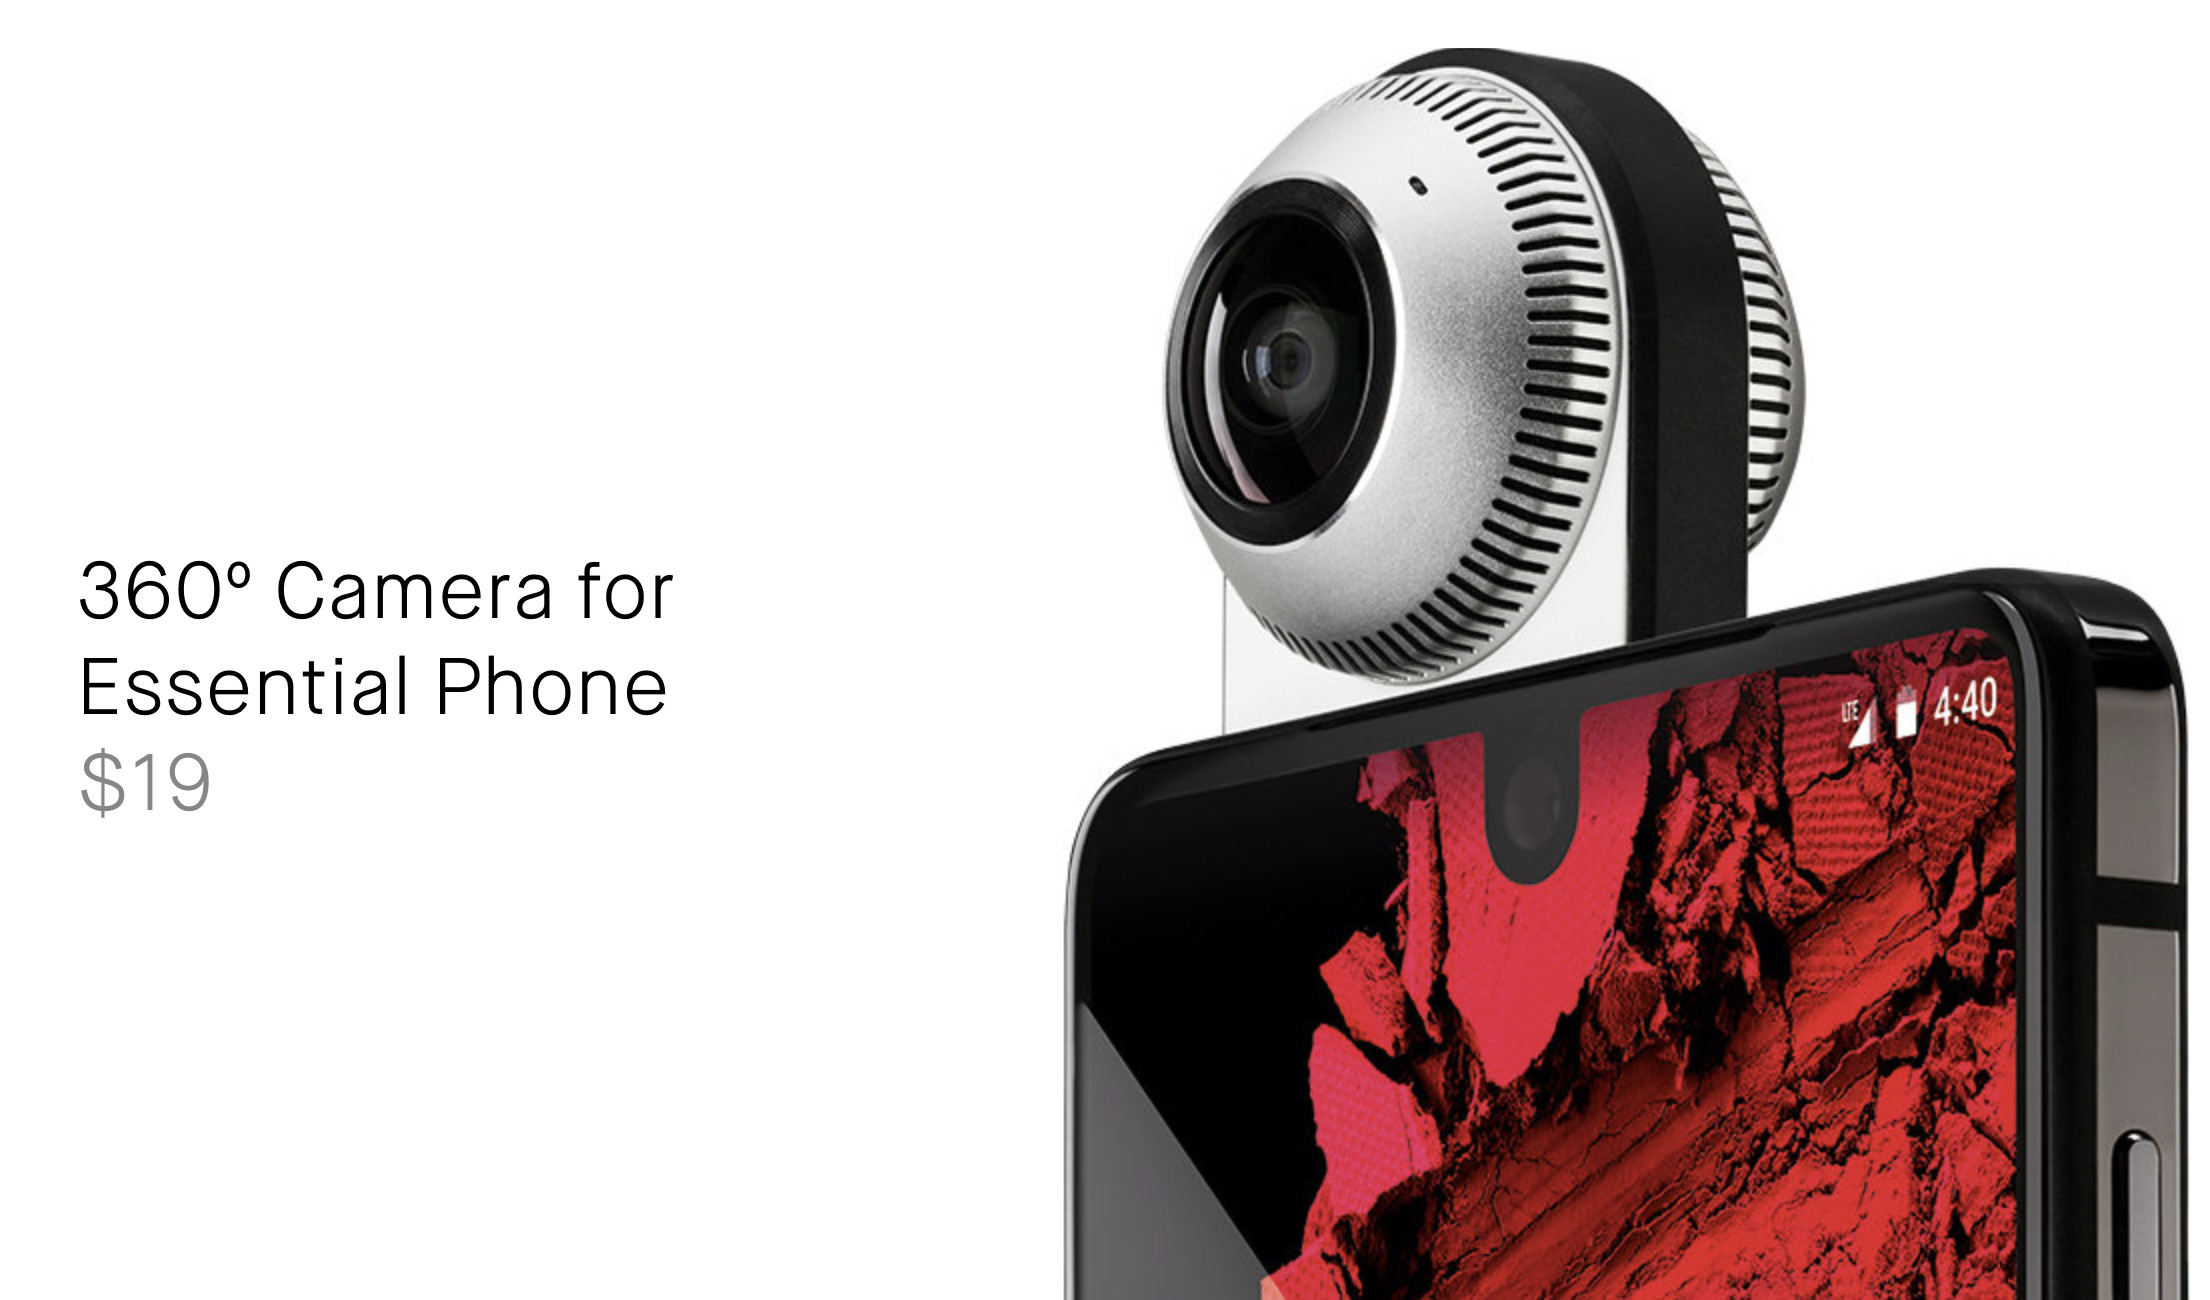 Essential discounts its 360 Camera accessory to $19 - Neowin